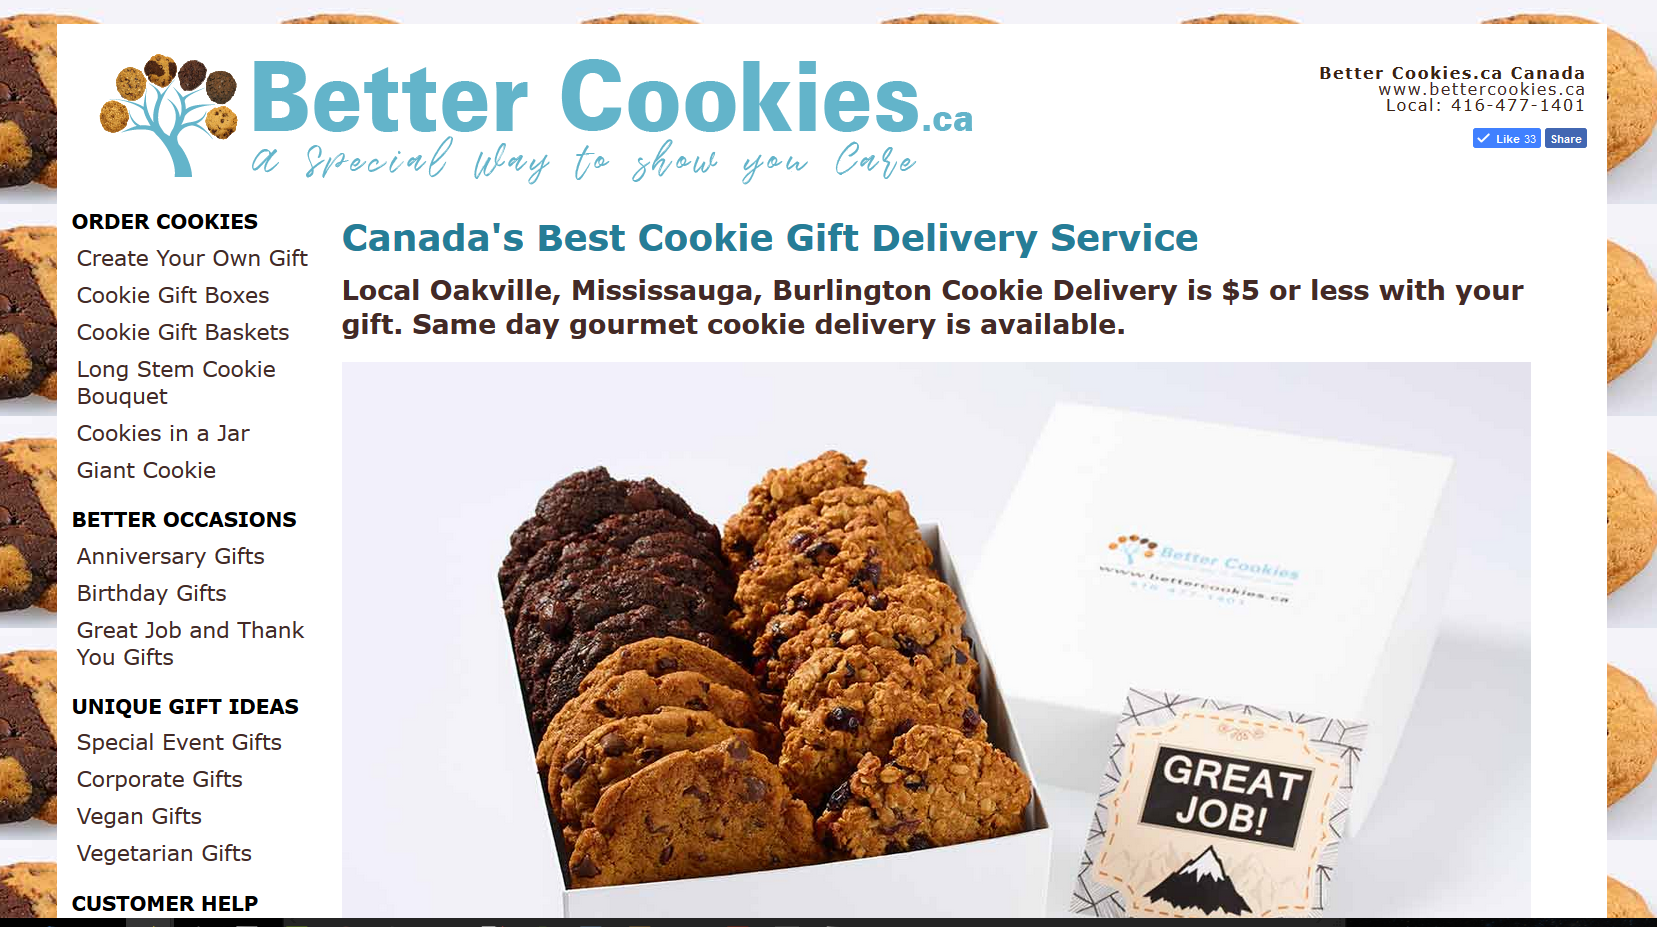 Better Cookies - Cookie Delivery in Canada